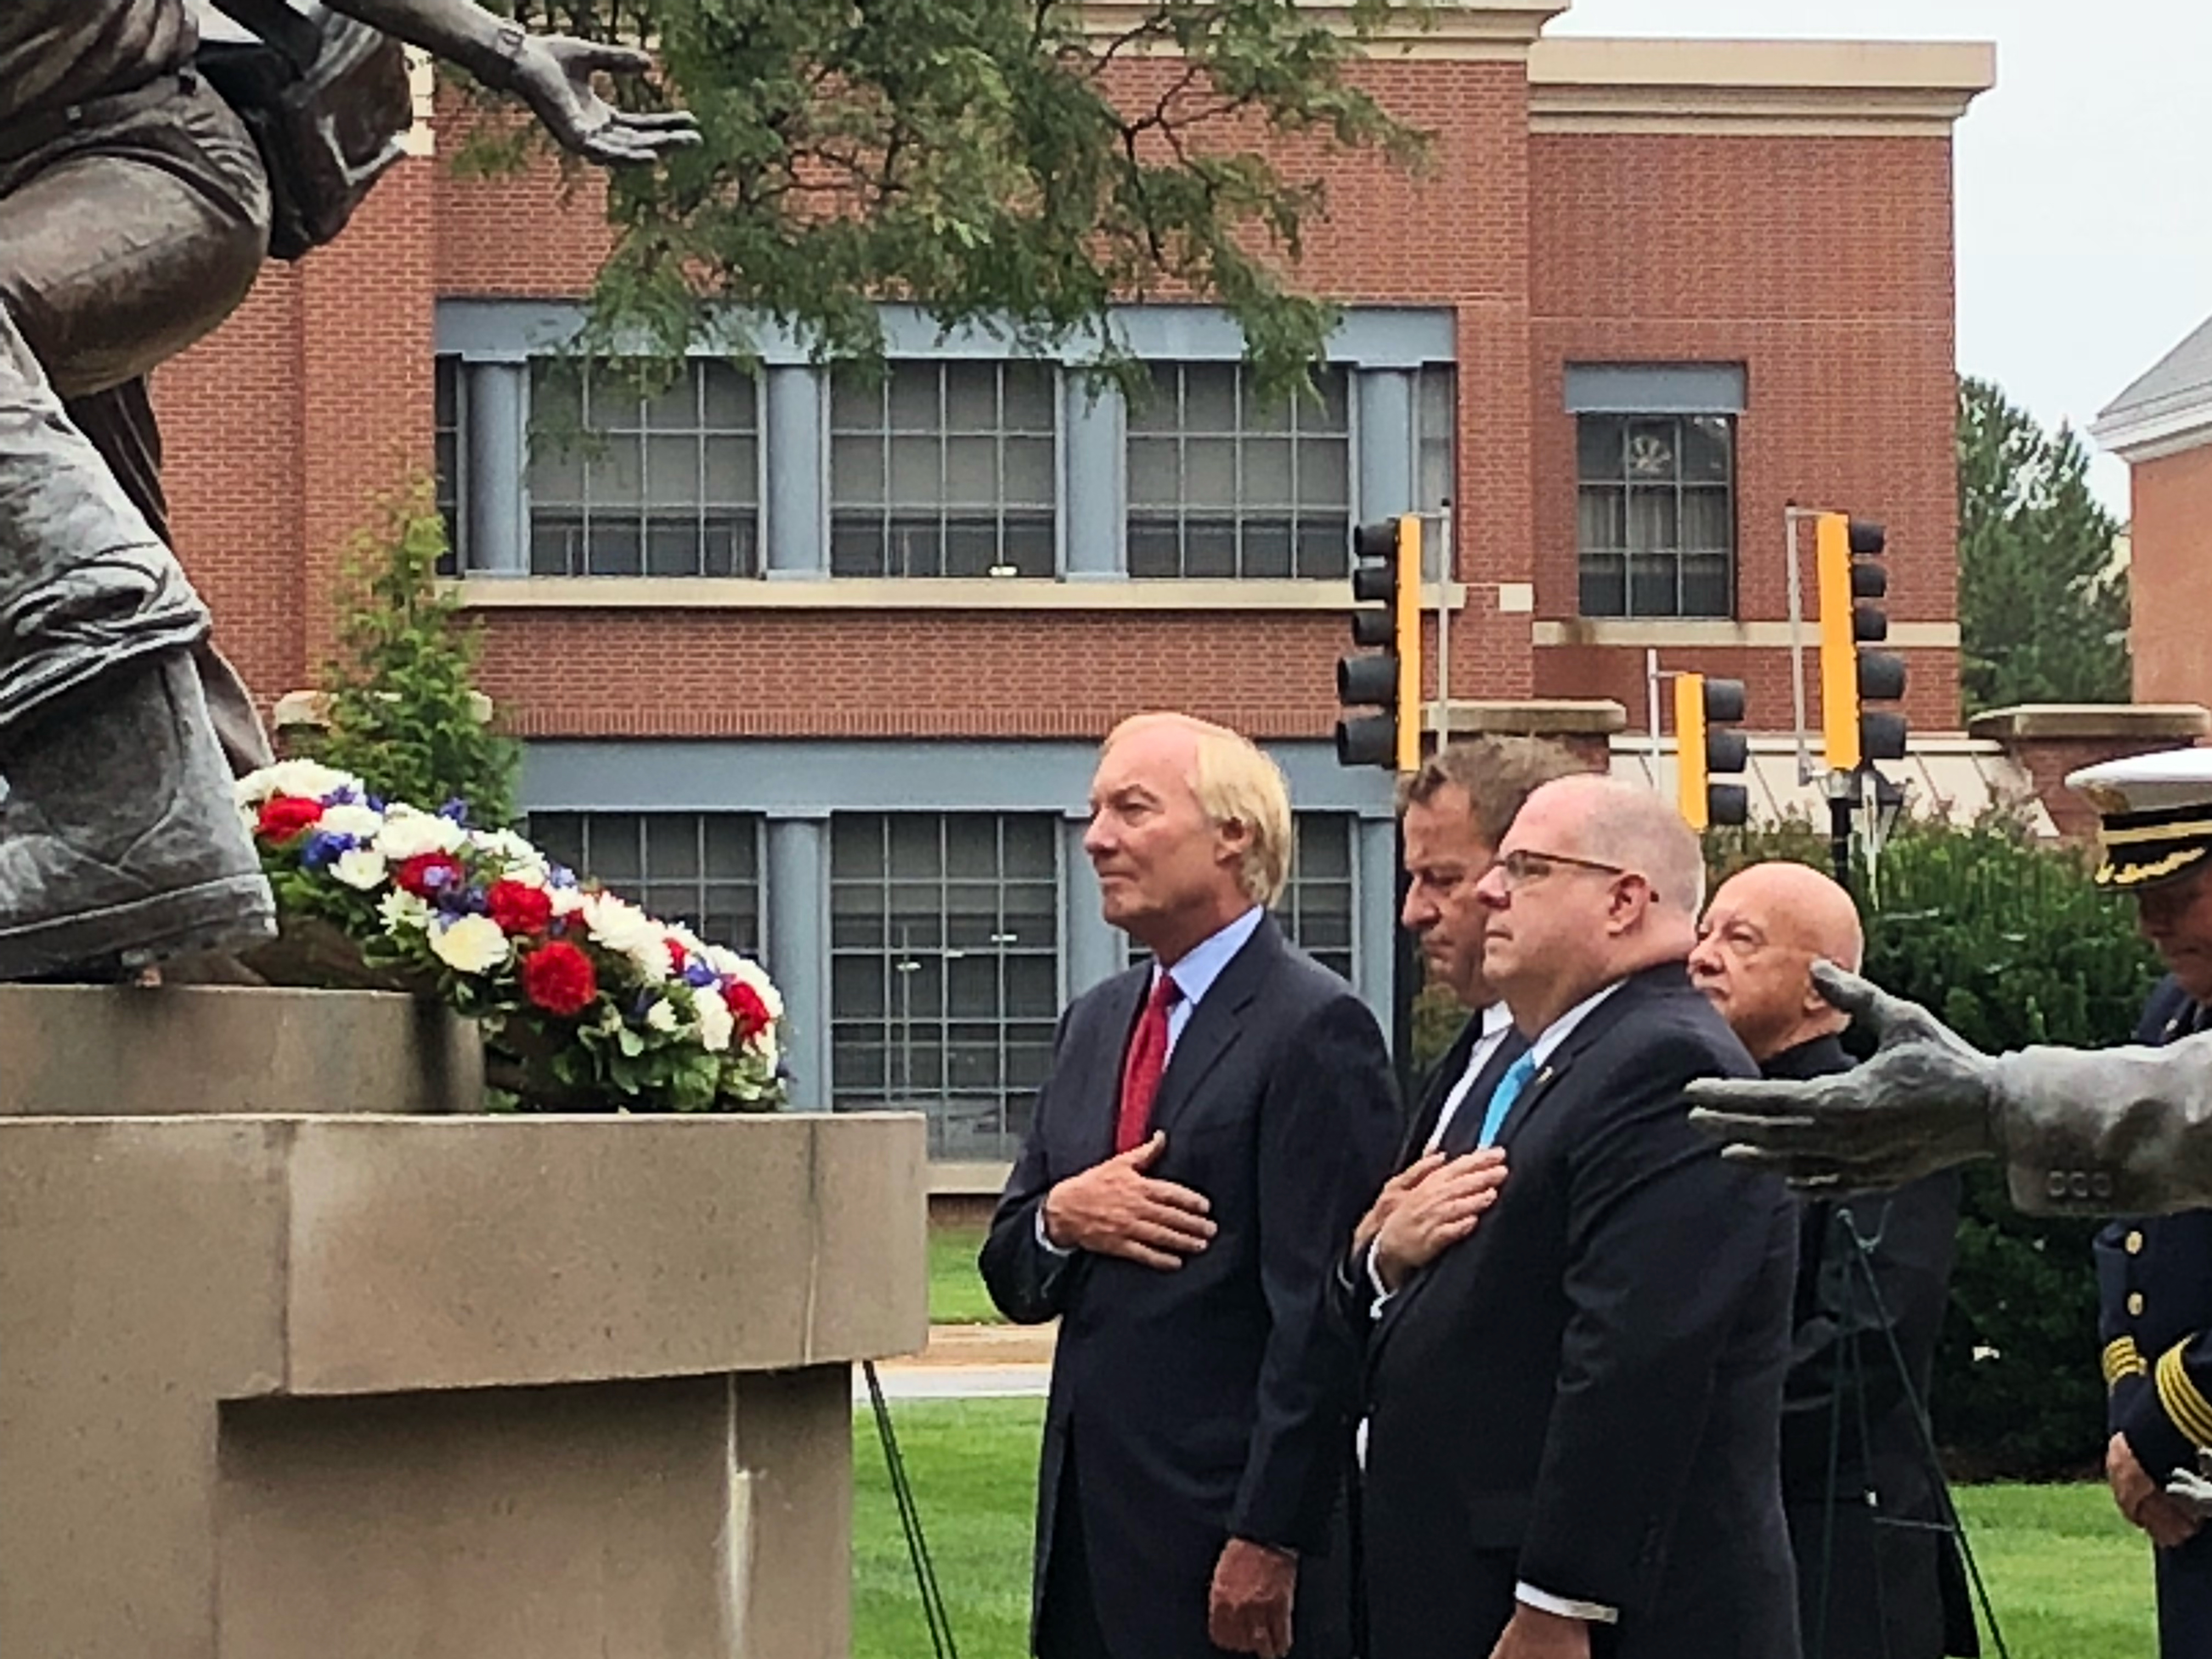 Maryland Gov. Larry Hogan, Annapolis Mayor Gavin Buckley and Maryland Comptroller Peter Franchot stand for a moment of silence before the Maryland Fire-Rescue Services Memorial during a wreath-laying ceremony commemorating the 17th anniversary of the Sept. 11, 2001, terrorist attacks on Sept. 11, 2018, in Annapolis, Maryland. (Photo by Brooks DuBose/Capital News Service)